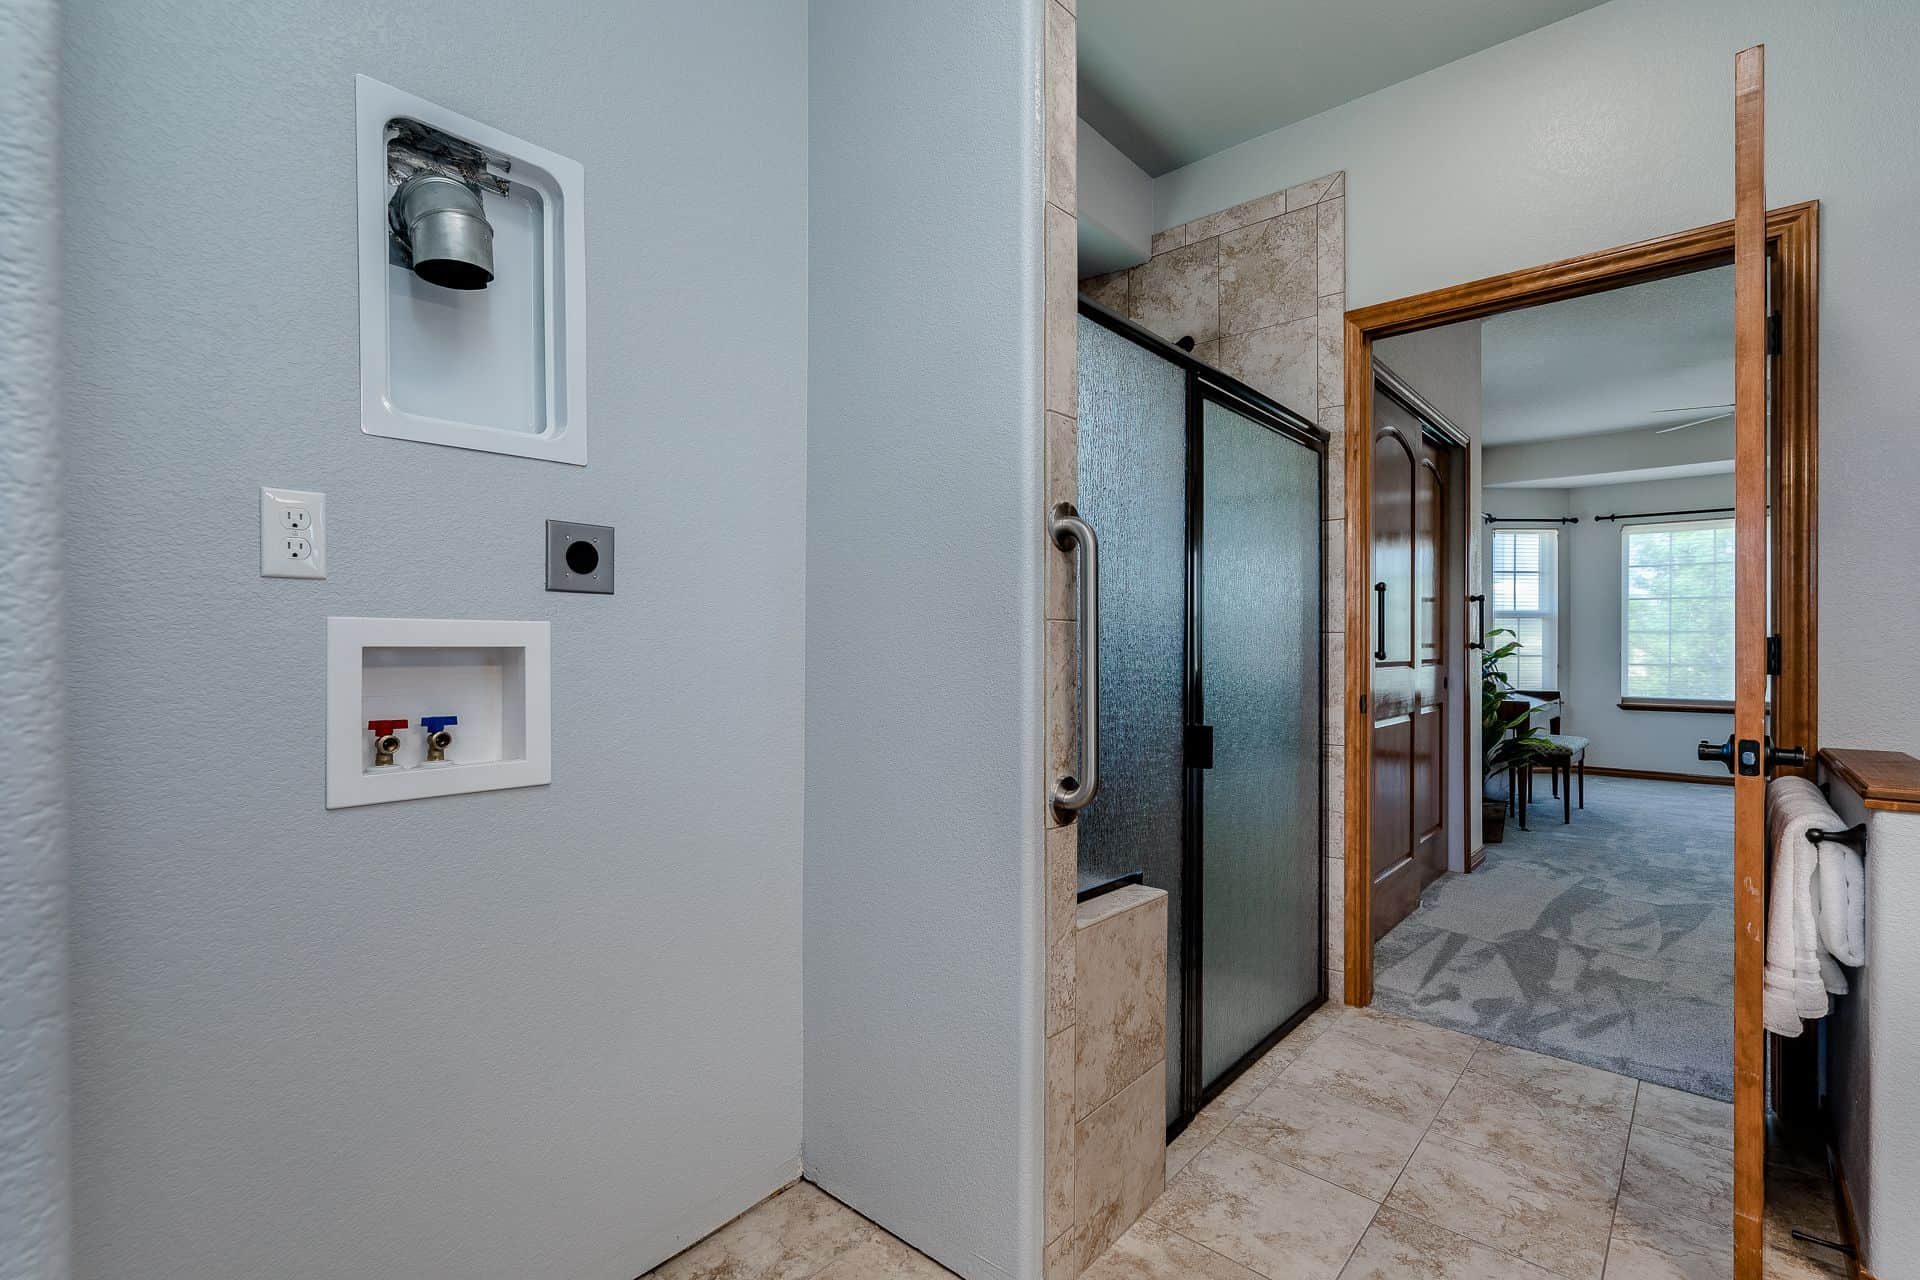 Ensuite Bath and Separate Laundry Hookup